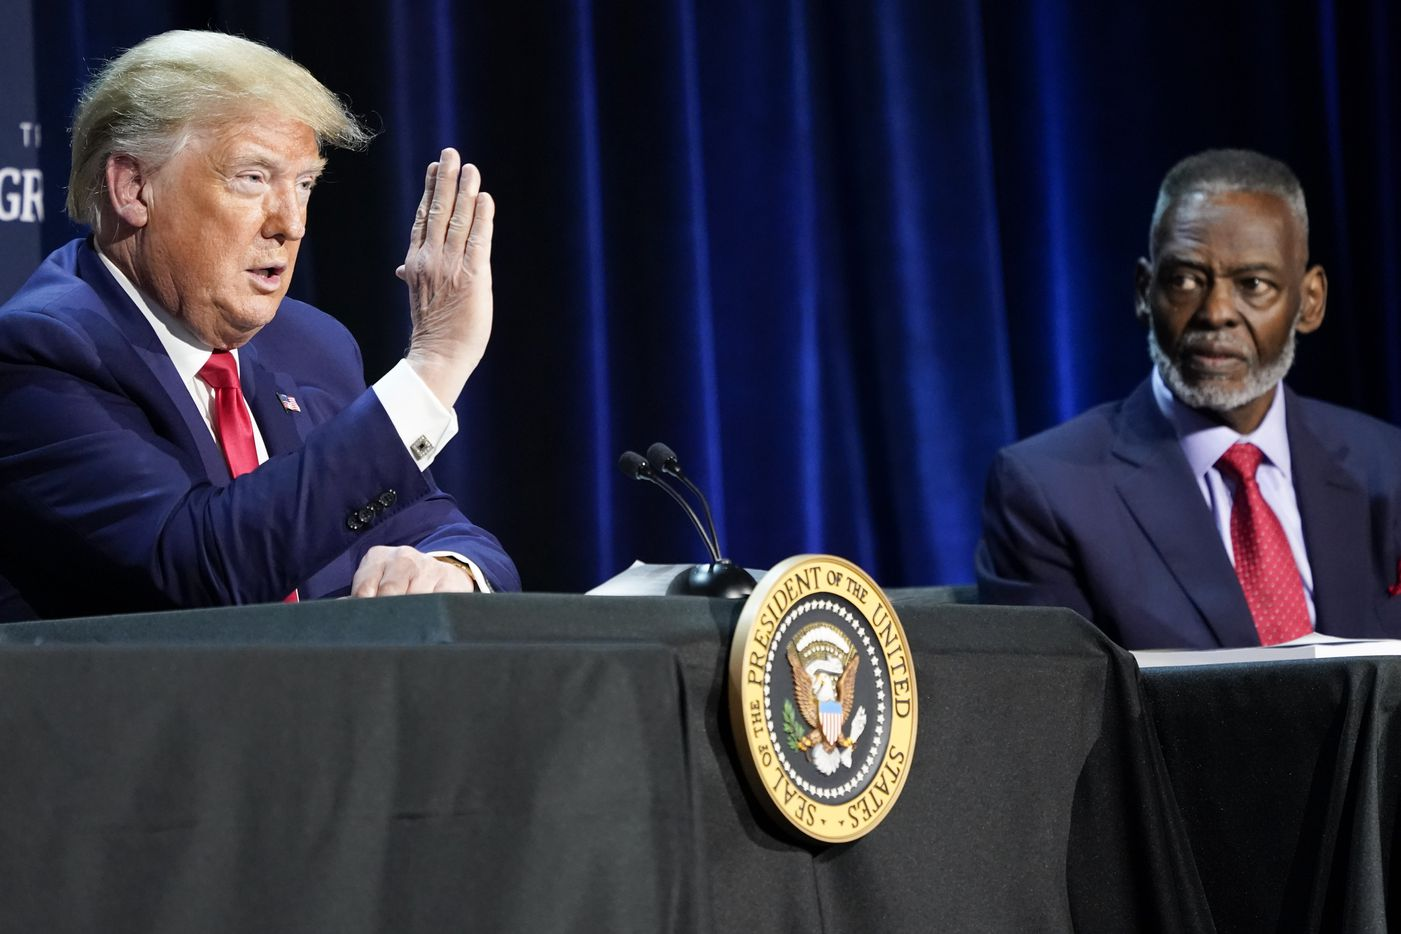 President Donald Trump speaks as Bishop Harry Jackson, senior pastor of Hope Christian Church, listens at right, during a roundtable conversation about race relations and policing at Gateway Church Dallas Campus on Thursday, June 11, 2020, in Dallas. (Smiley N. Pool/The Dallas Morning News)